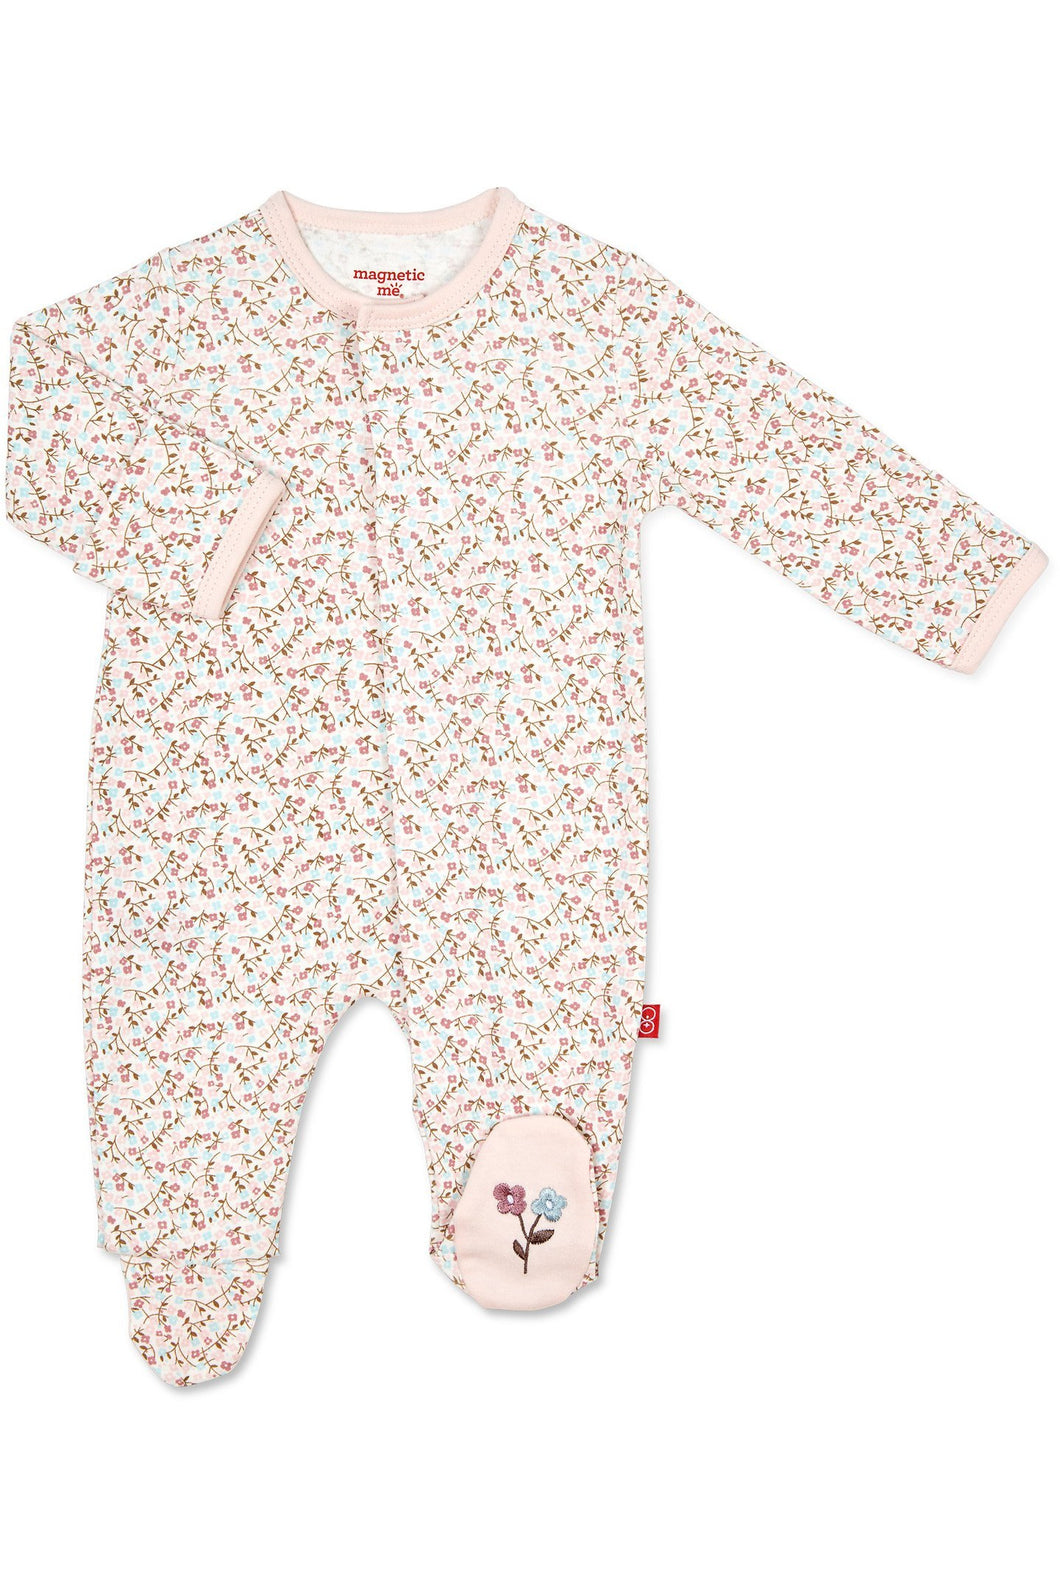 BEDFORD FLORAL MAGNETIC FOOTIE